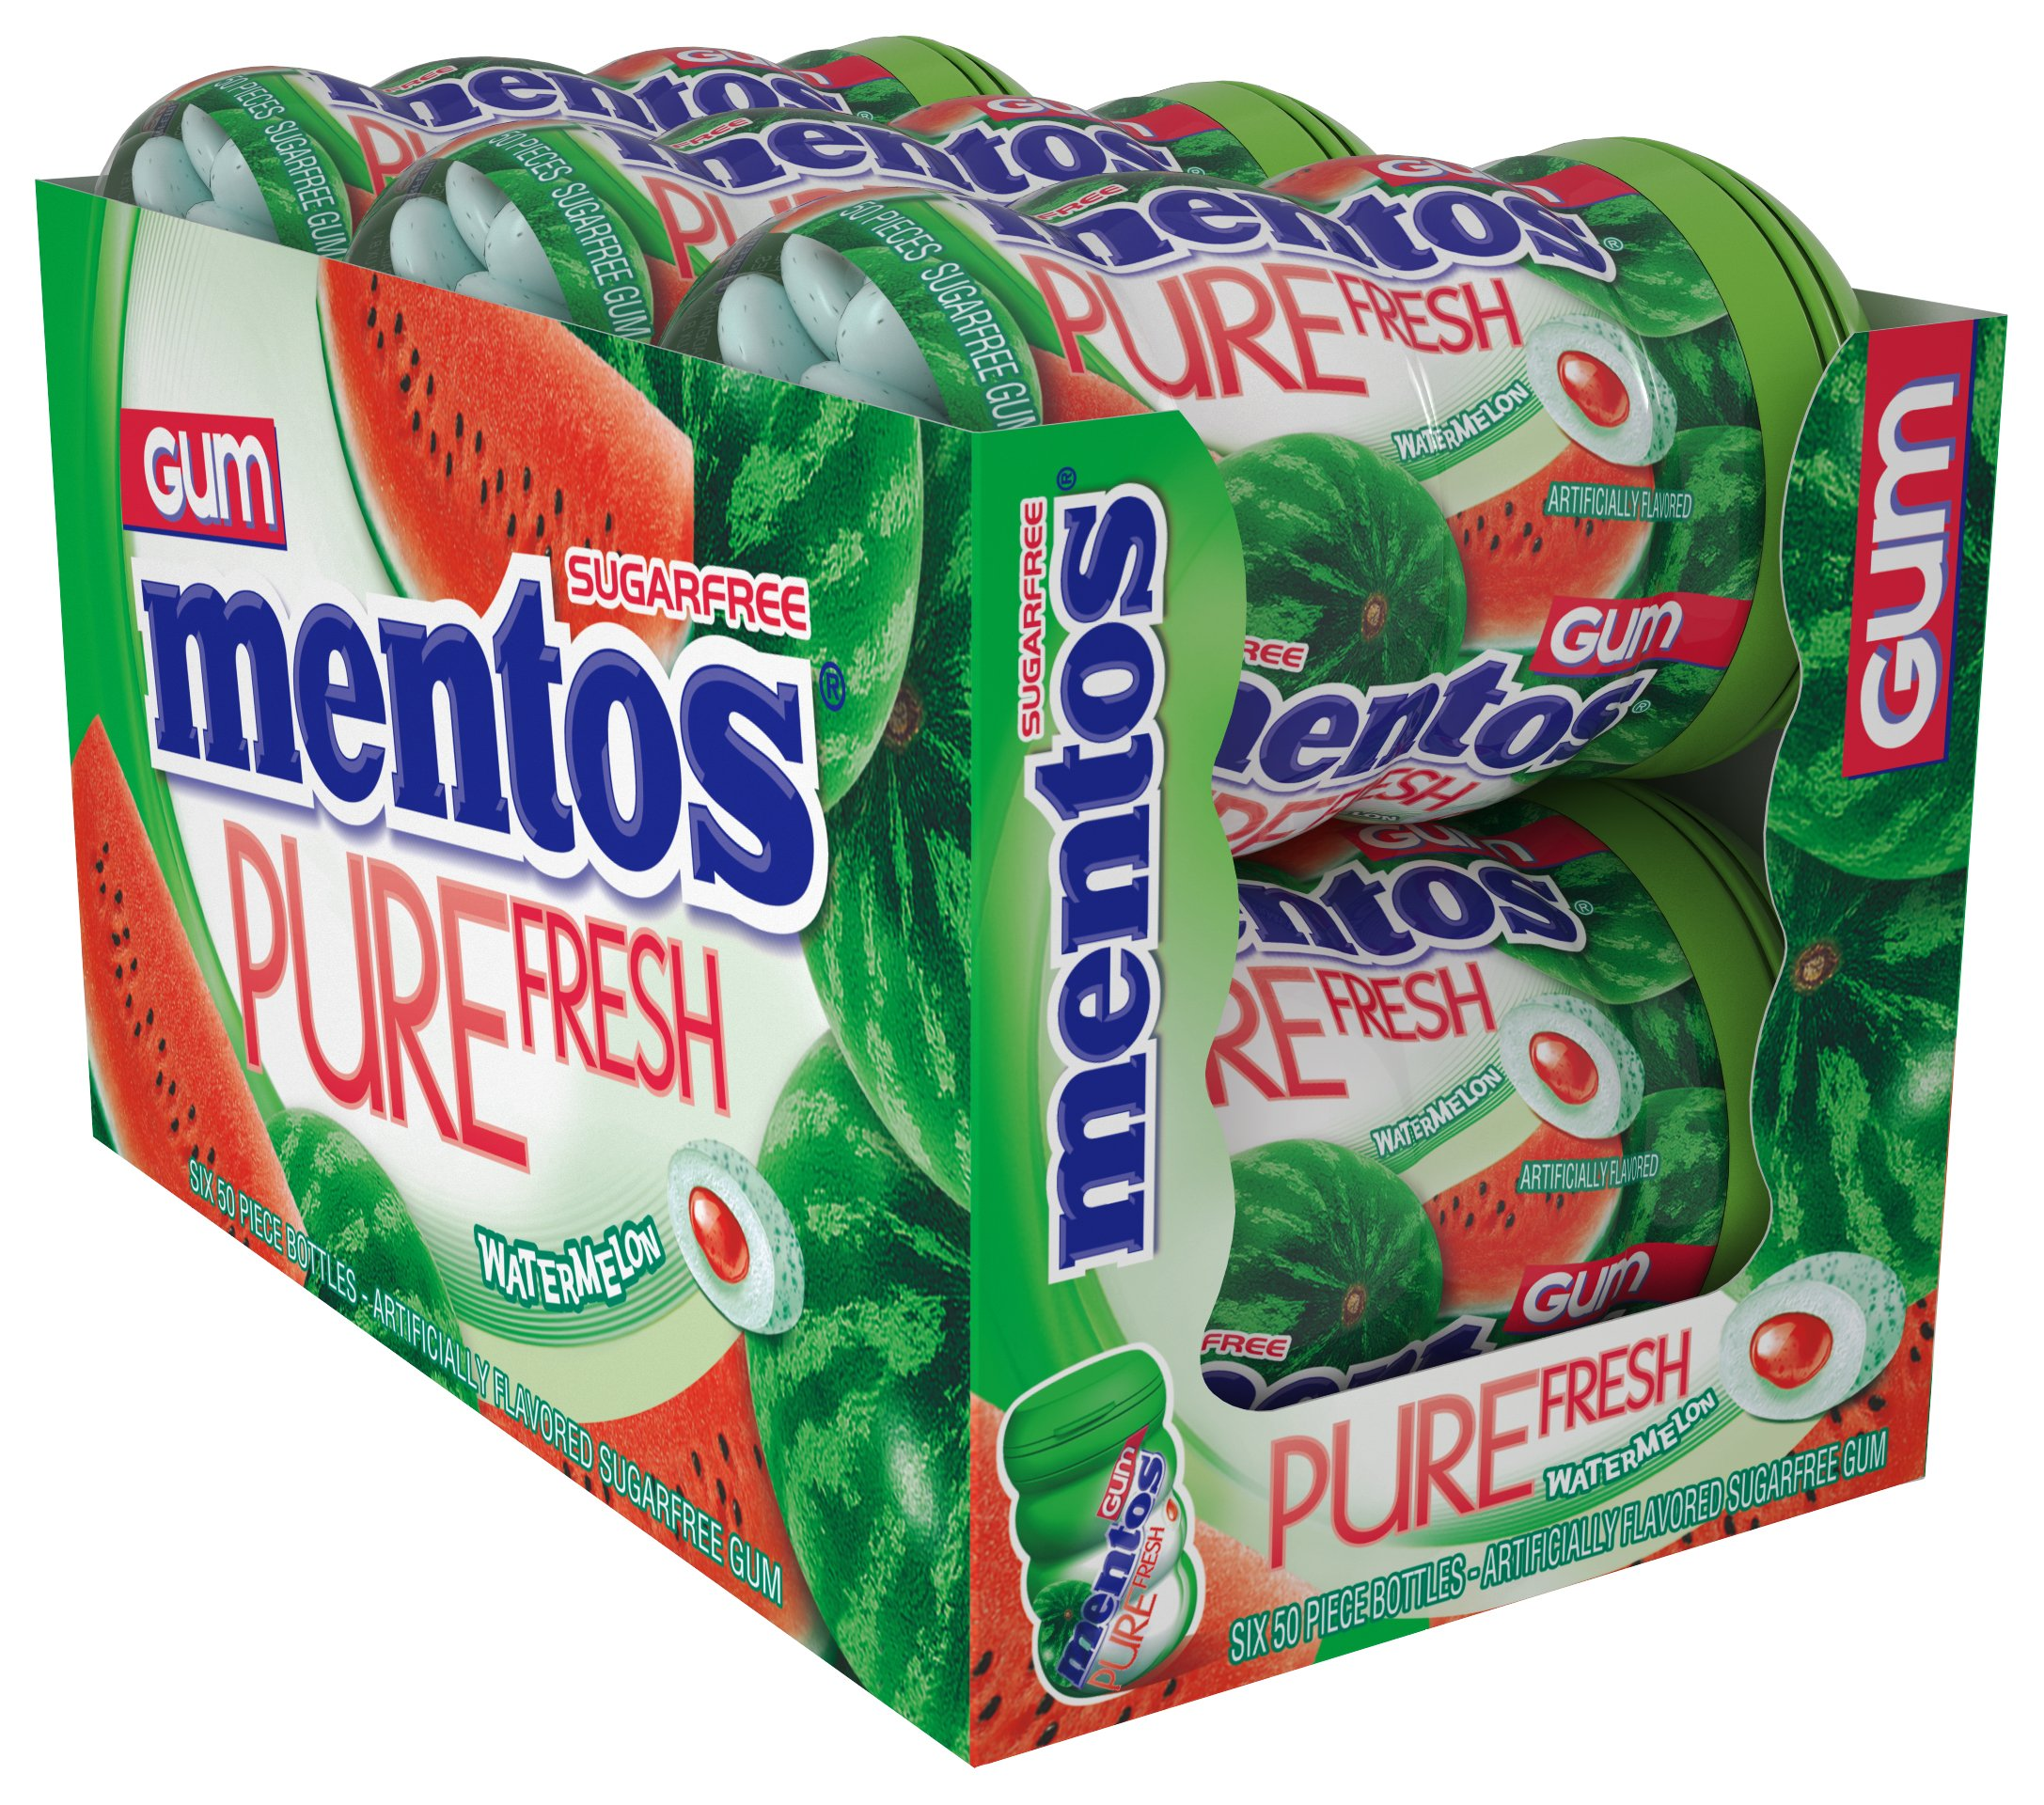 Mentos Pure Fresh Sugar-Free Chewing Gum with Xylitol, Watermelon, Halloween Candy, Bulk, 50 Count, Pack of 6 by Mentos